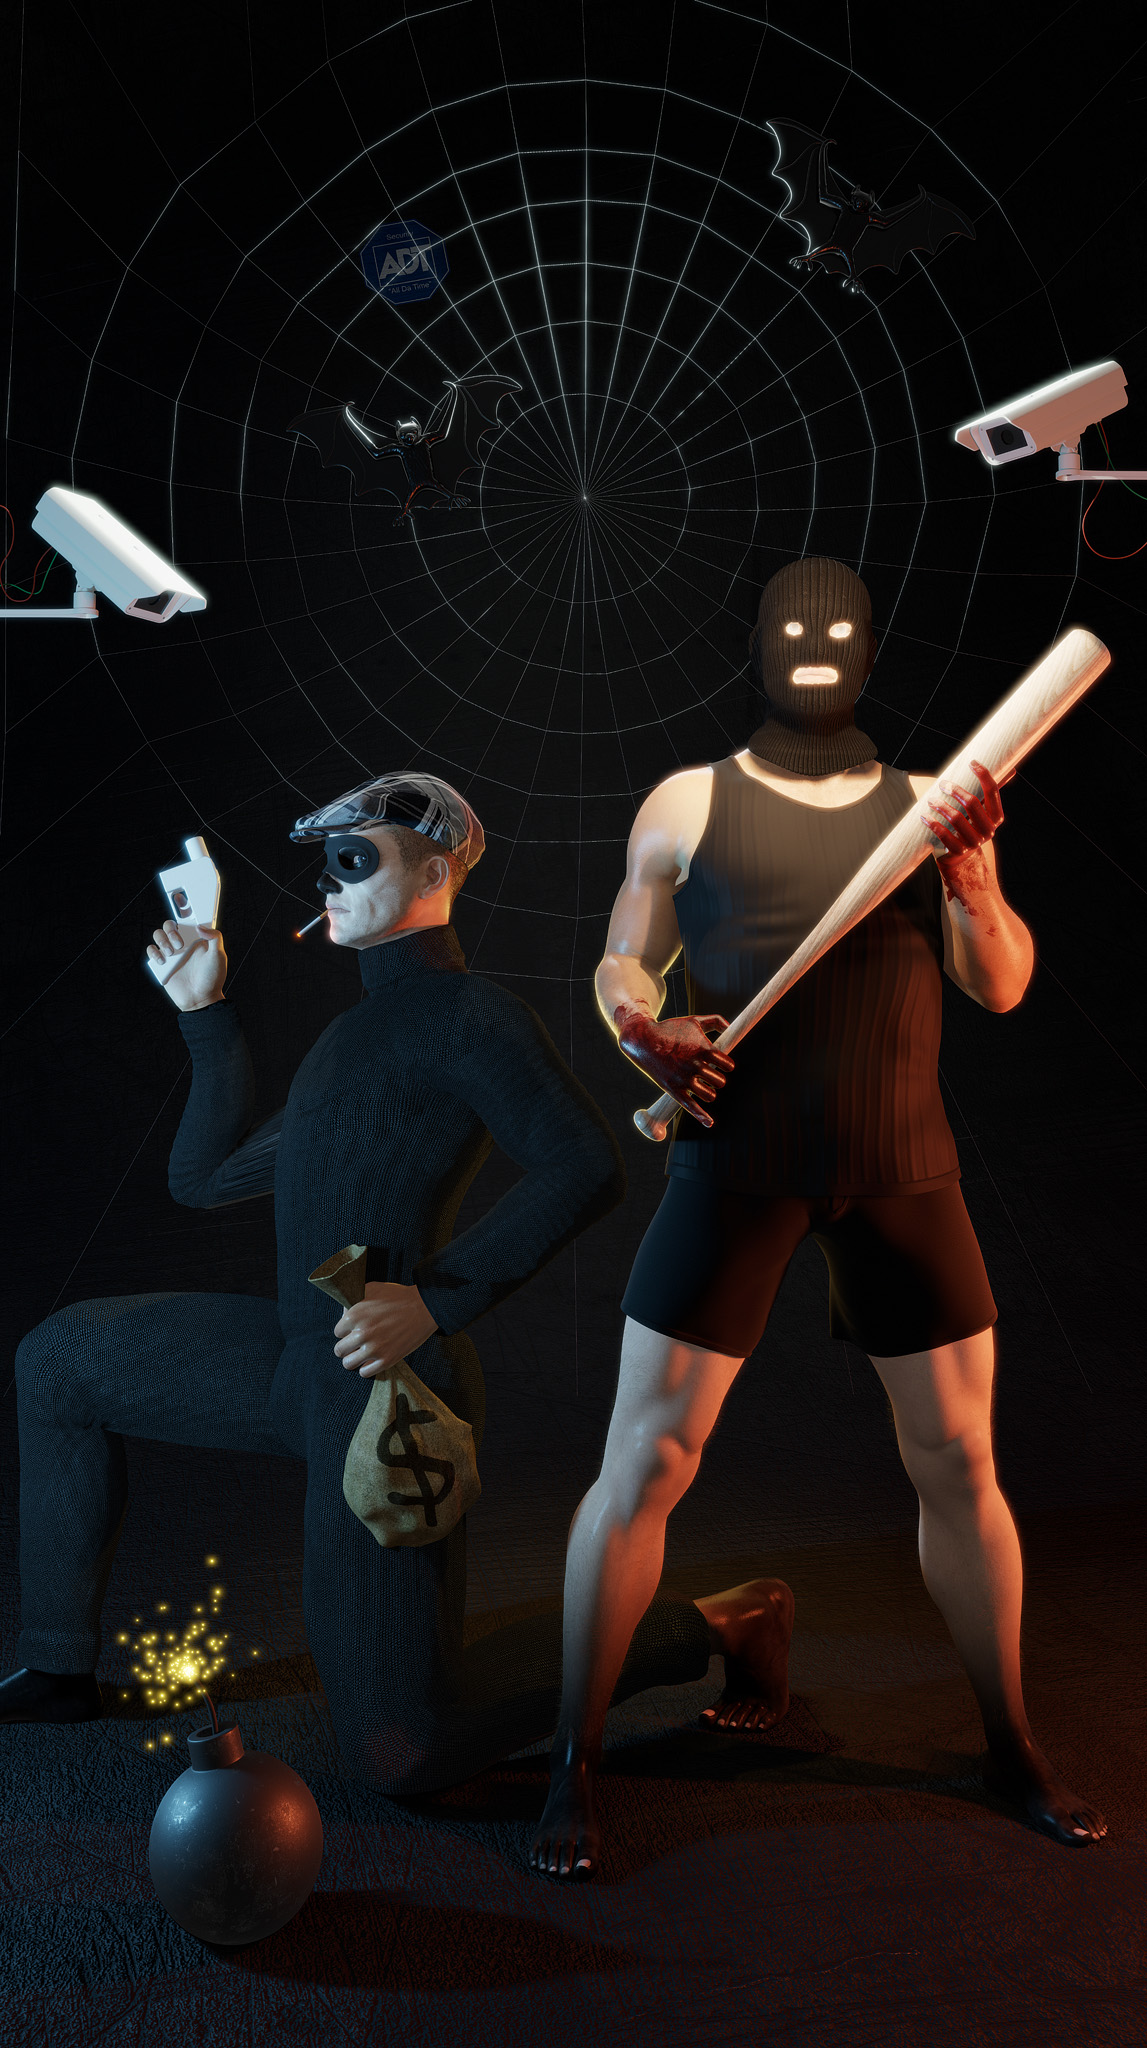 One man standing with a baseball bat and ski mask next to another kneeling man in a newsboy hat, mask, and black turtleneck, holding a bag of money. Security cameras from either side film them both.